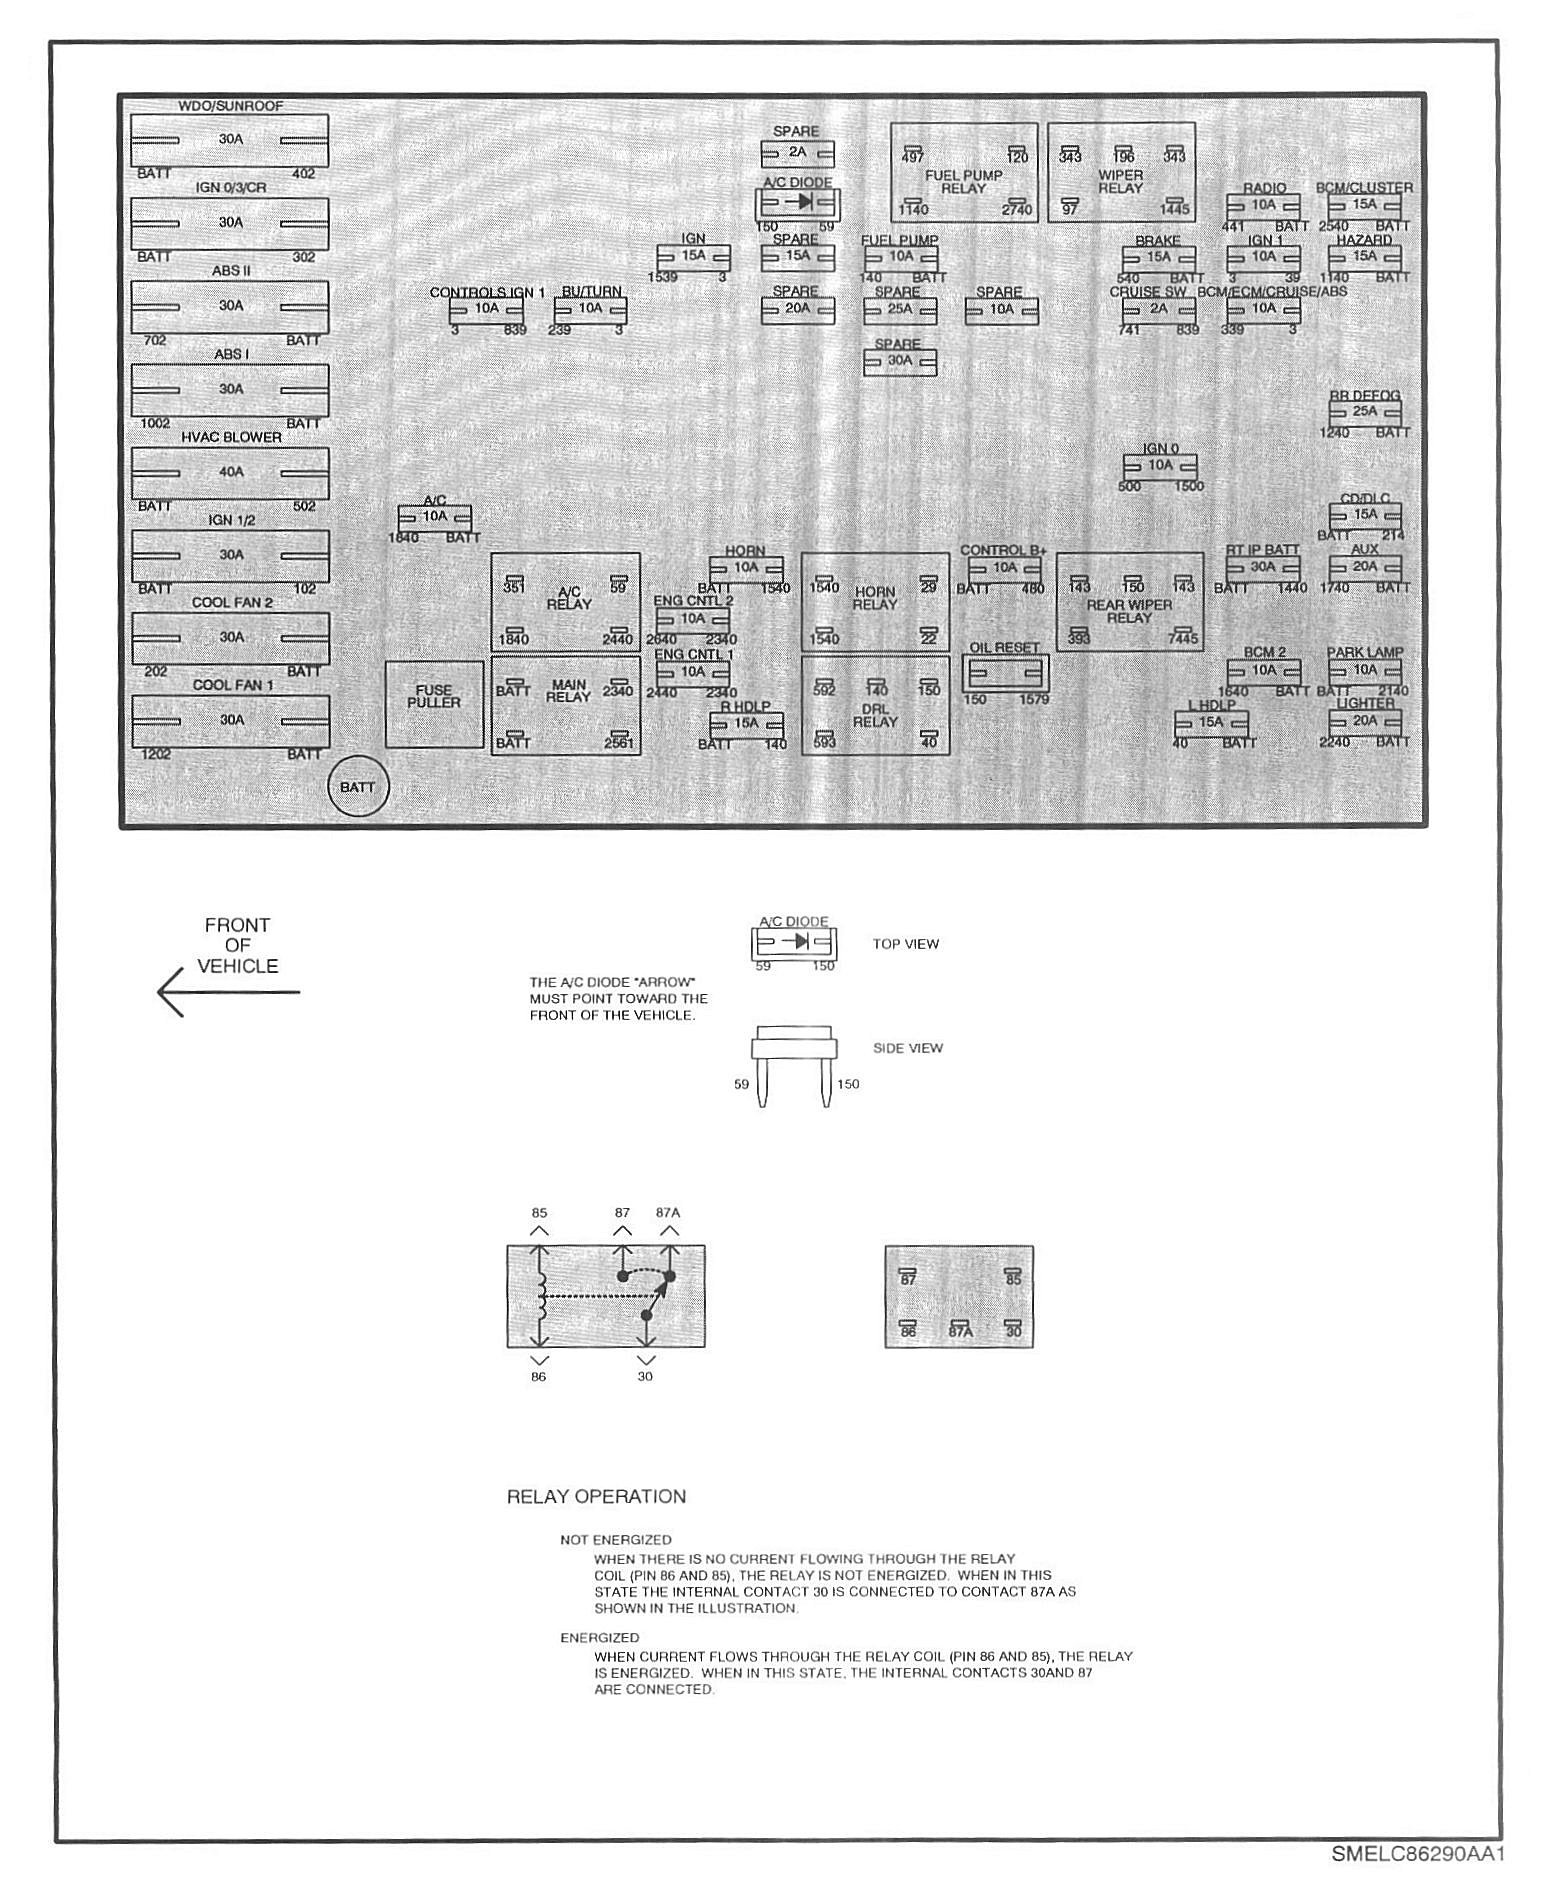 1987 toyota pickup fuse box diagram